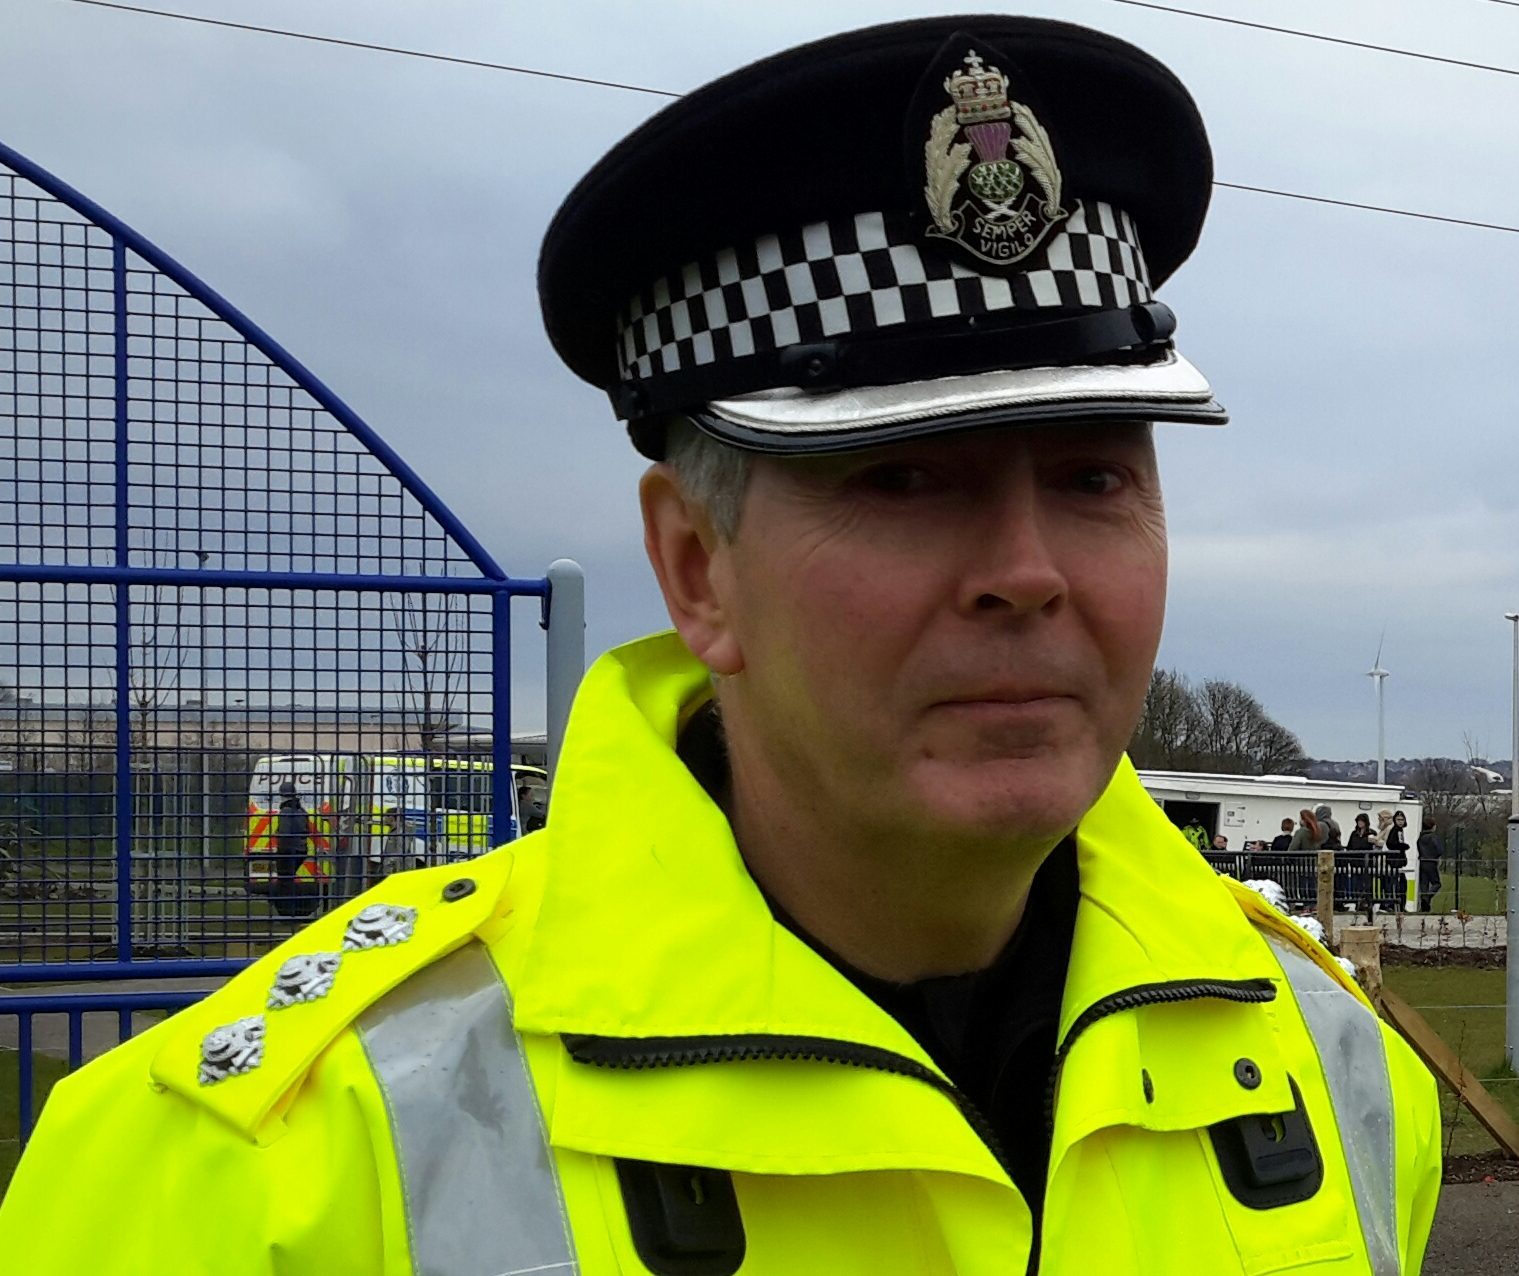 Chief Inspector Ian Scott has pledged action to curb a worrying spike in antisocial behaviour.